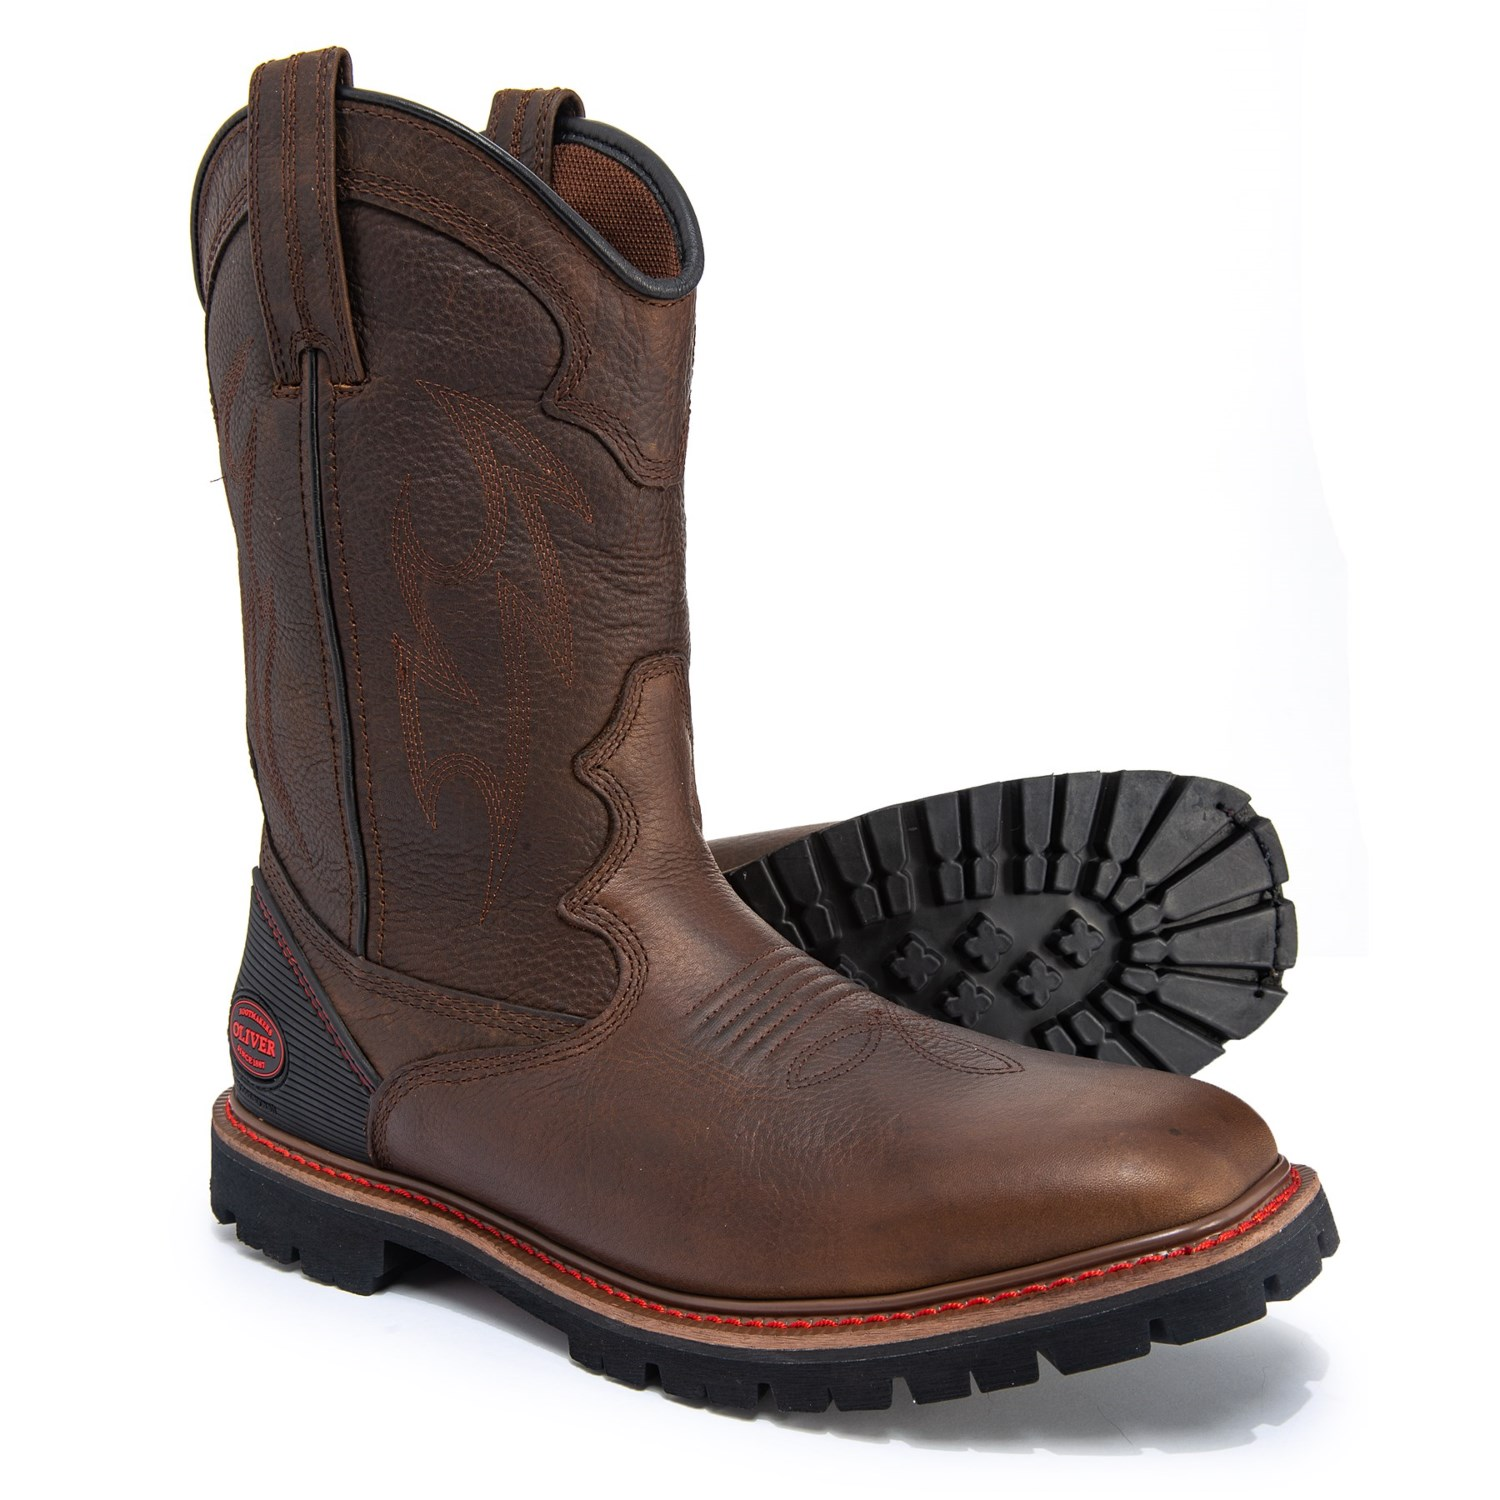 e0039b17b35 Oliver Western Style Square Toe Work Boots - Leather (For Men)